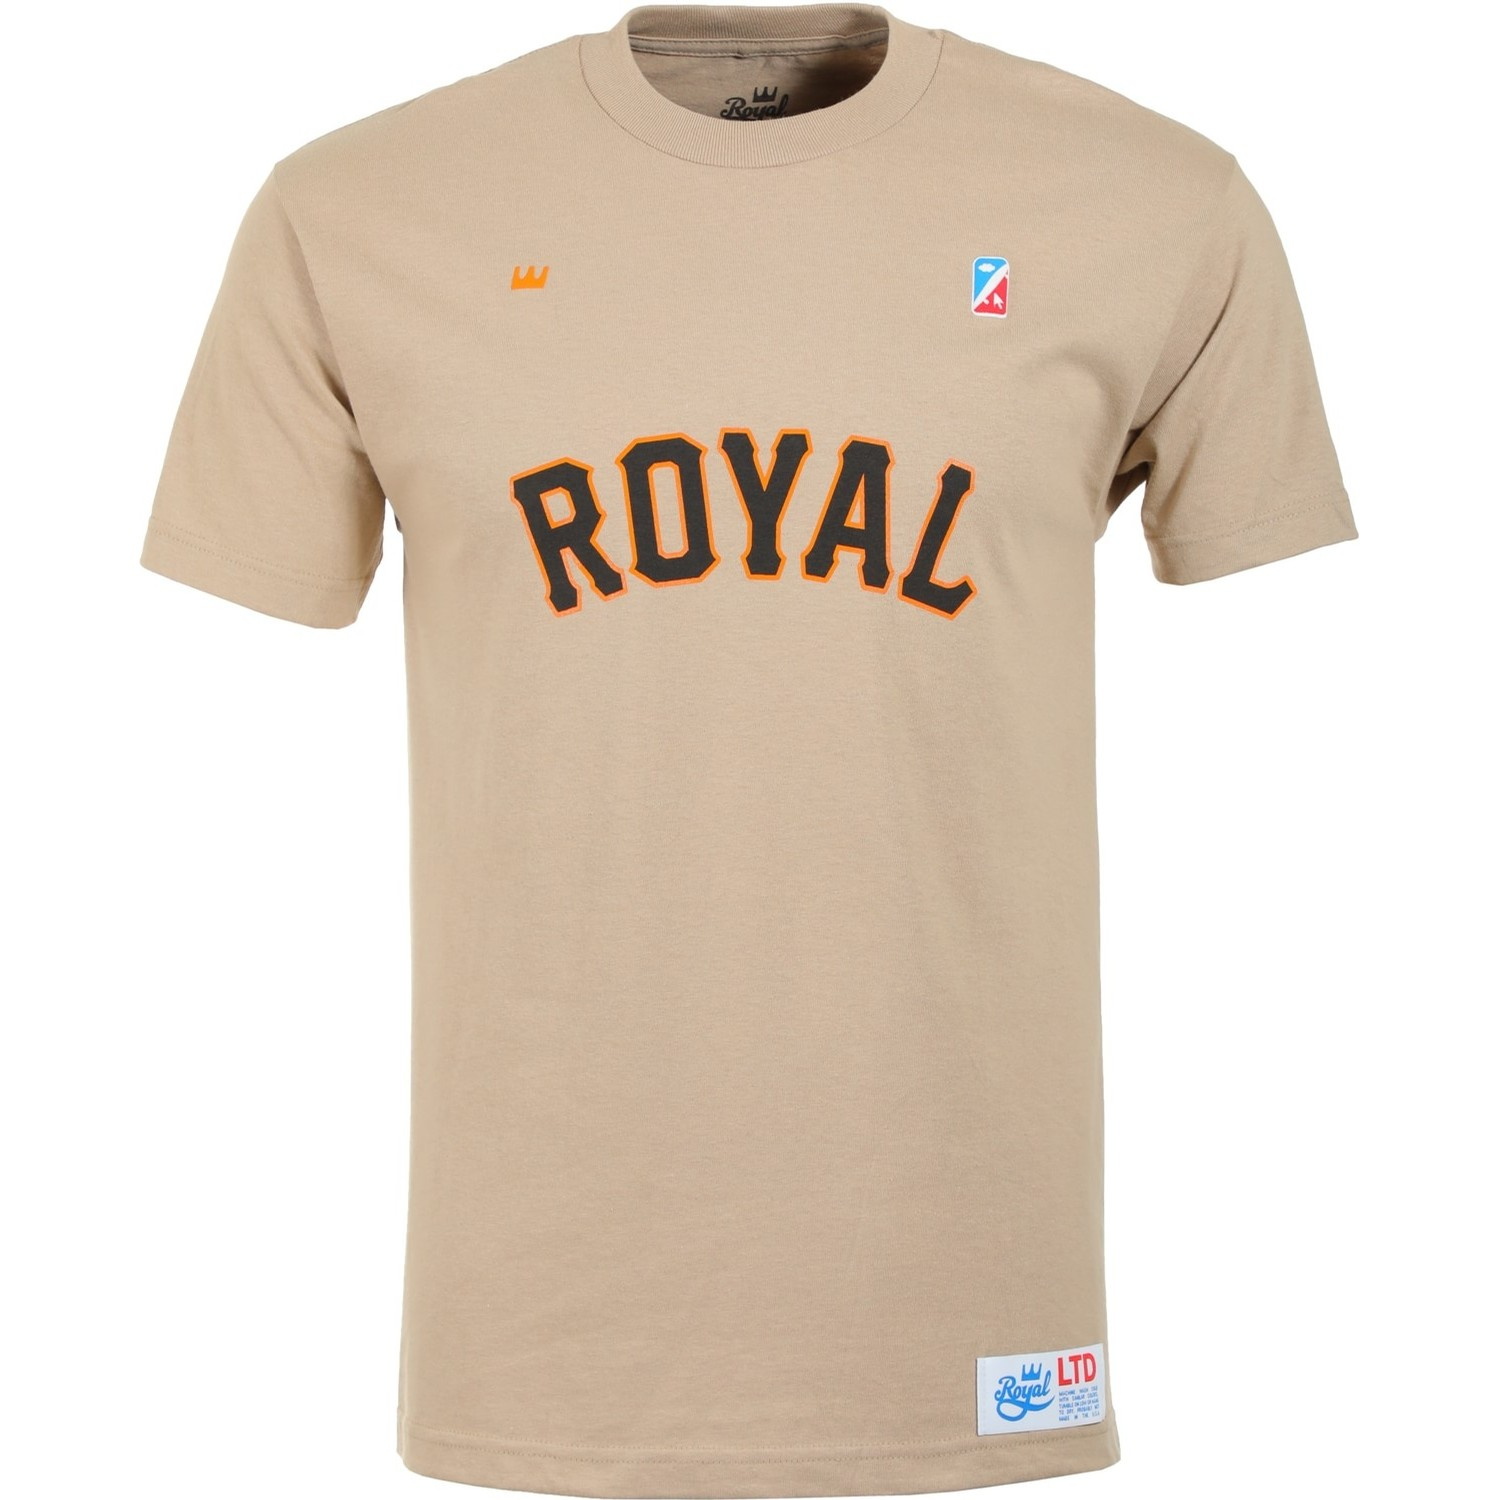 Royal Giant Tee (Sand)